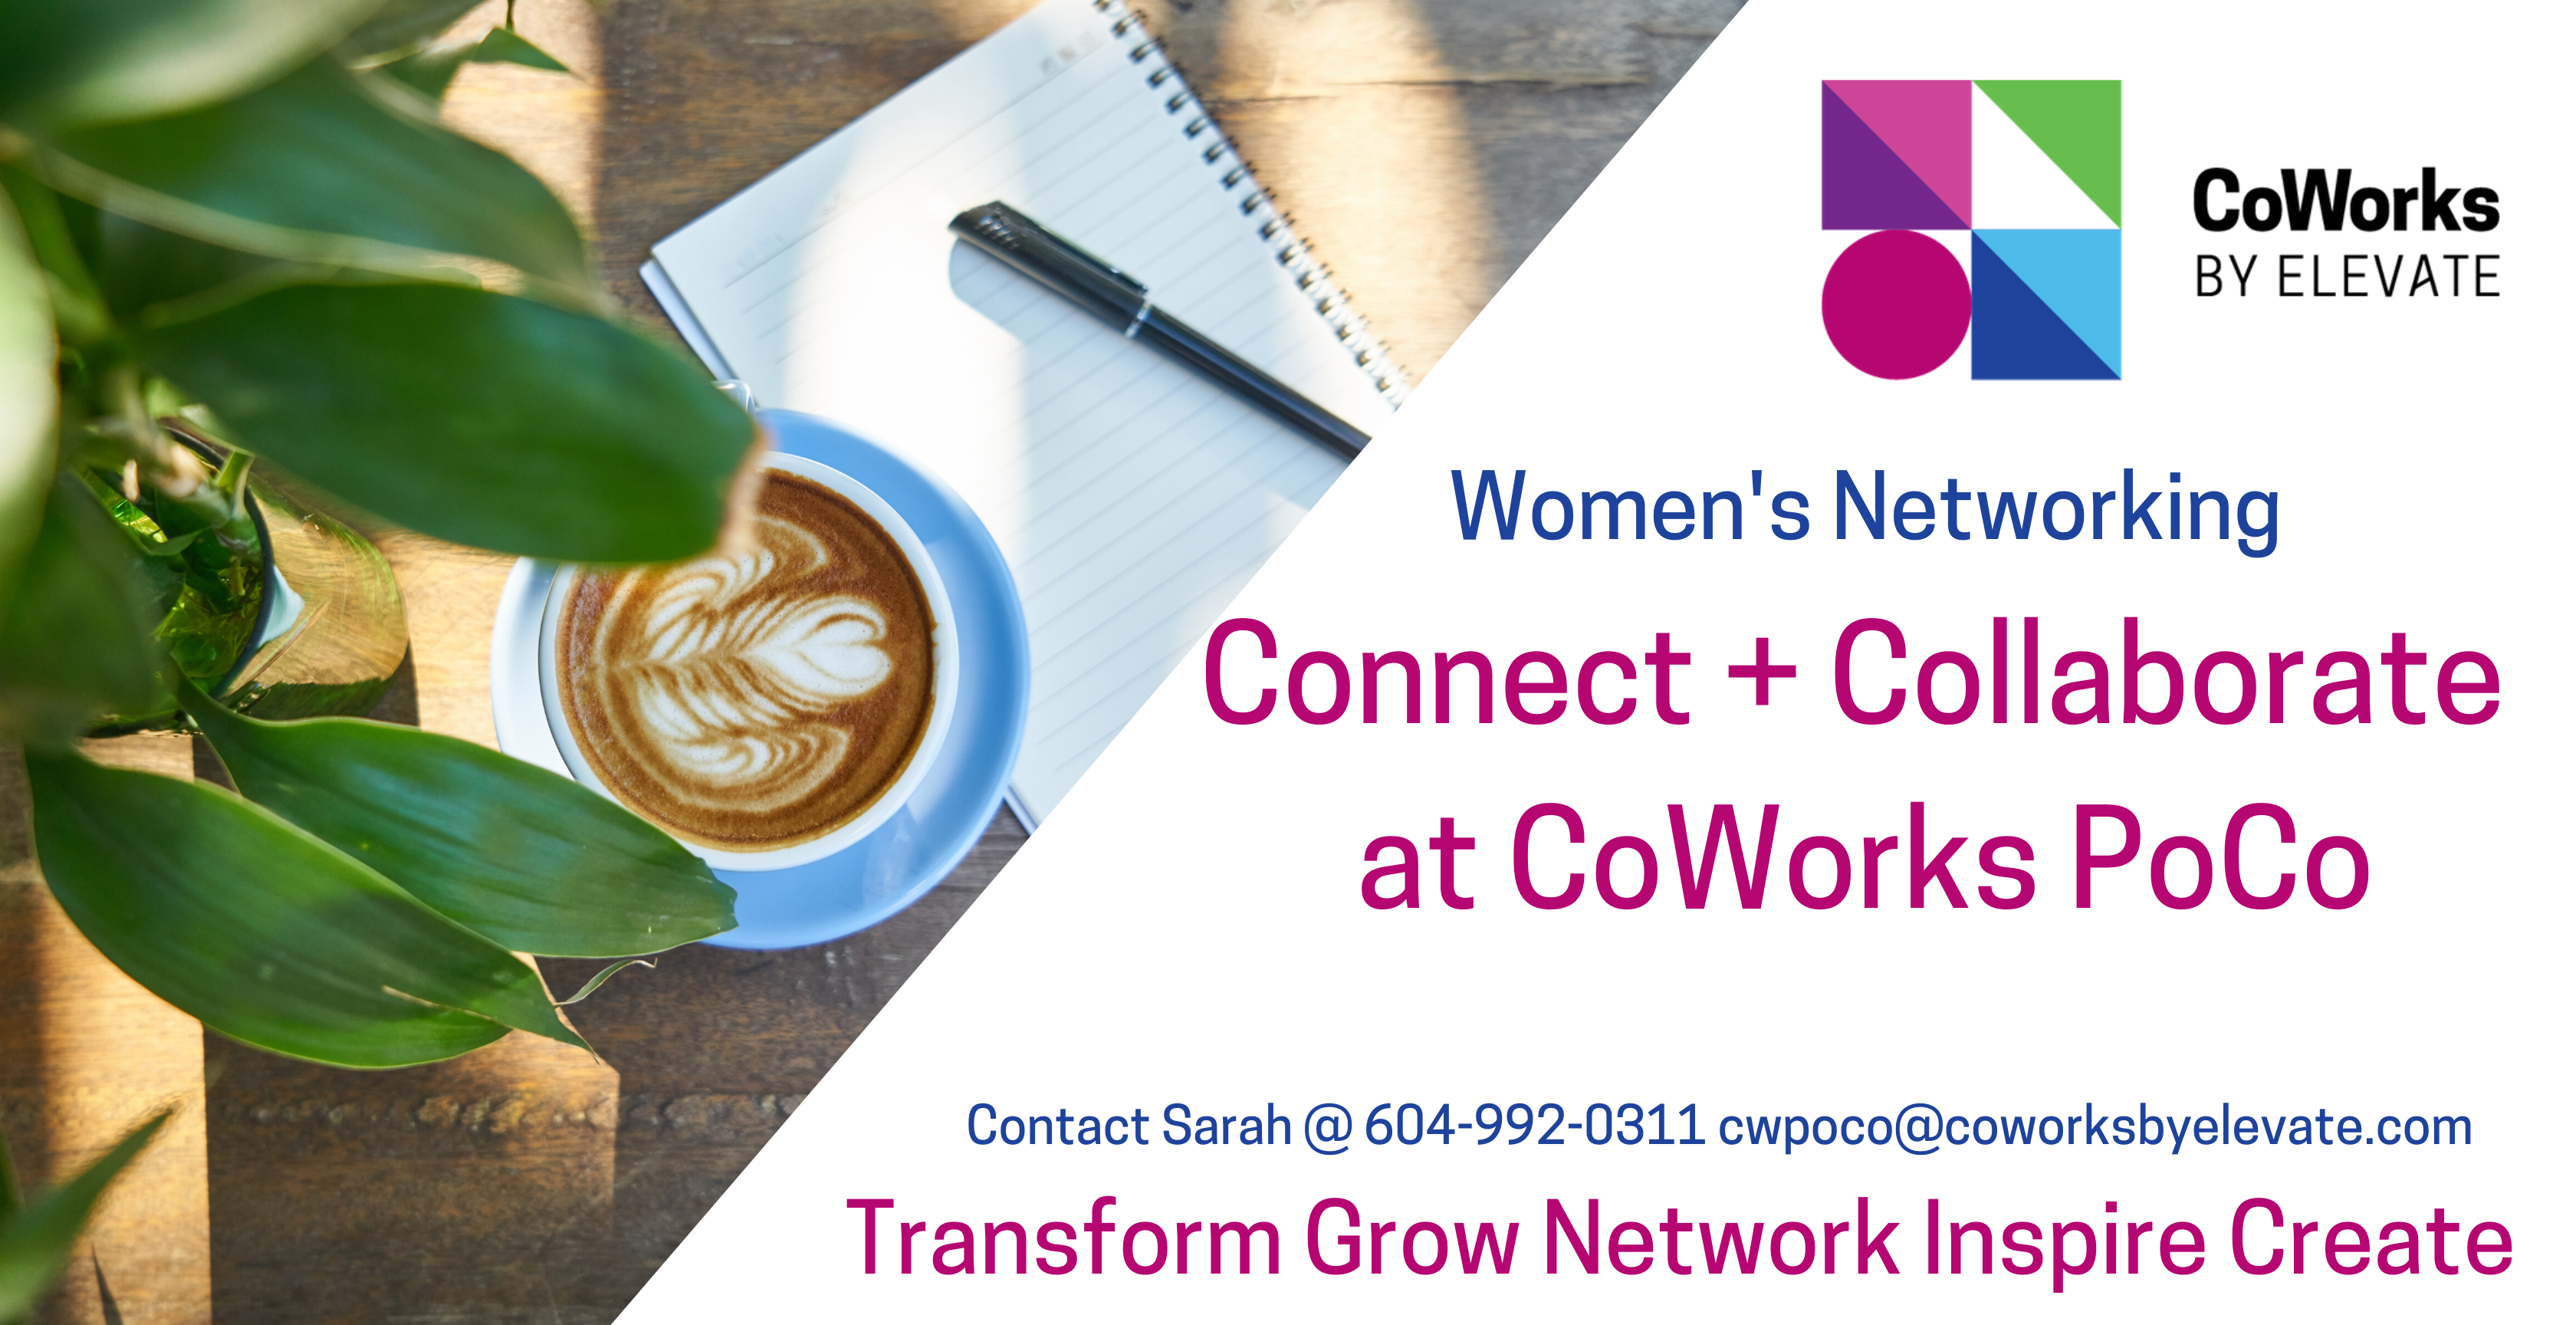 Connect + Collaborate at CoWorks Port Coquitlam